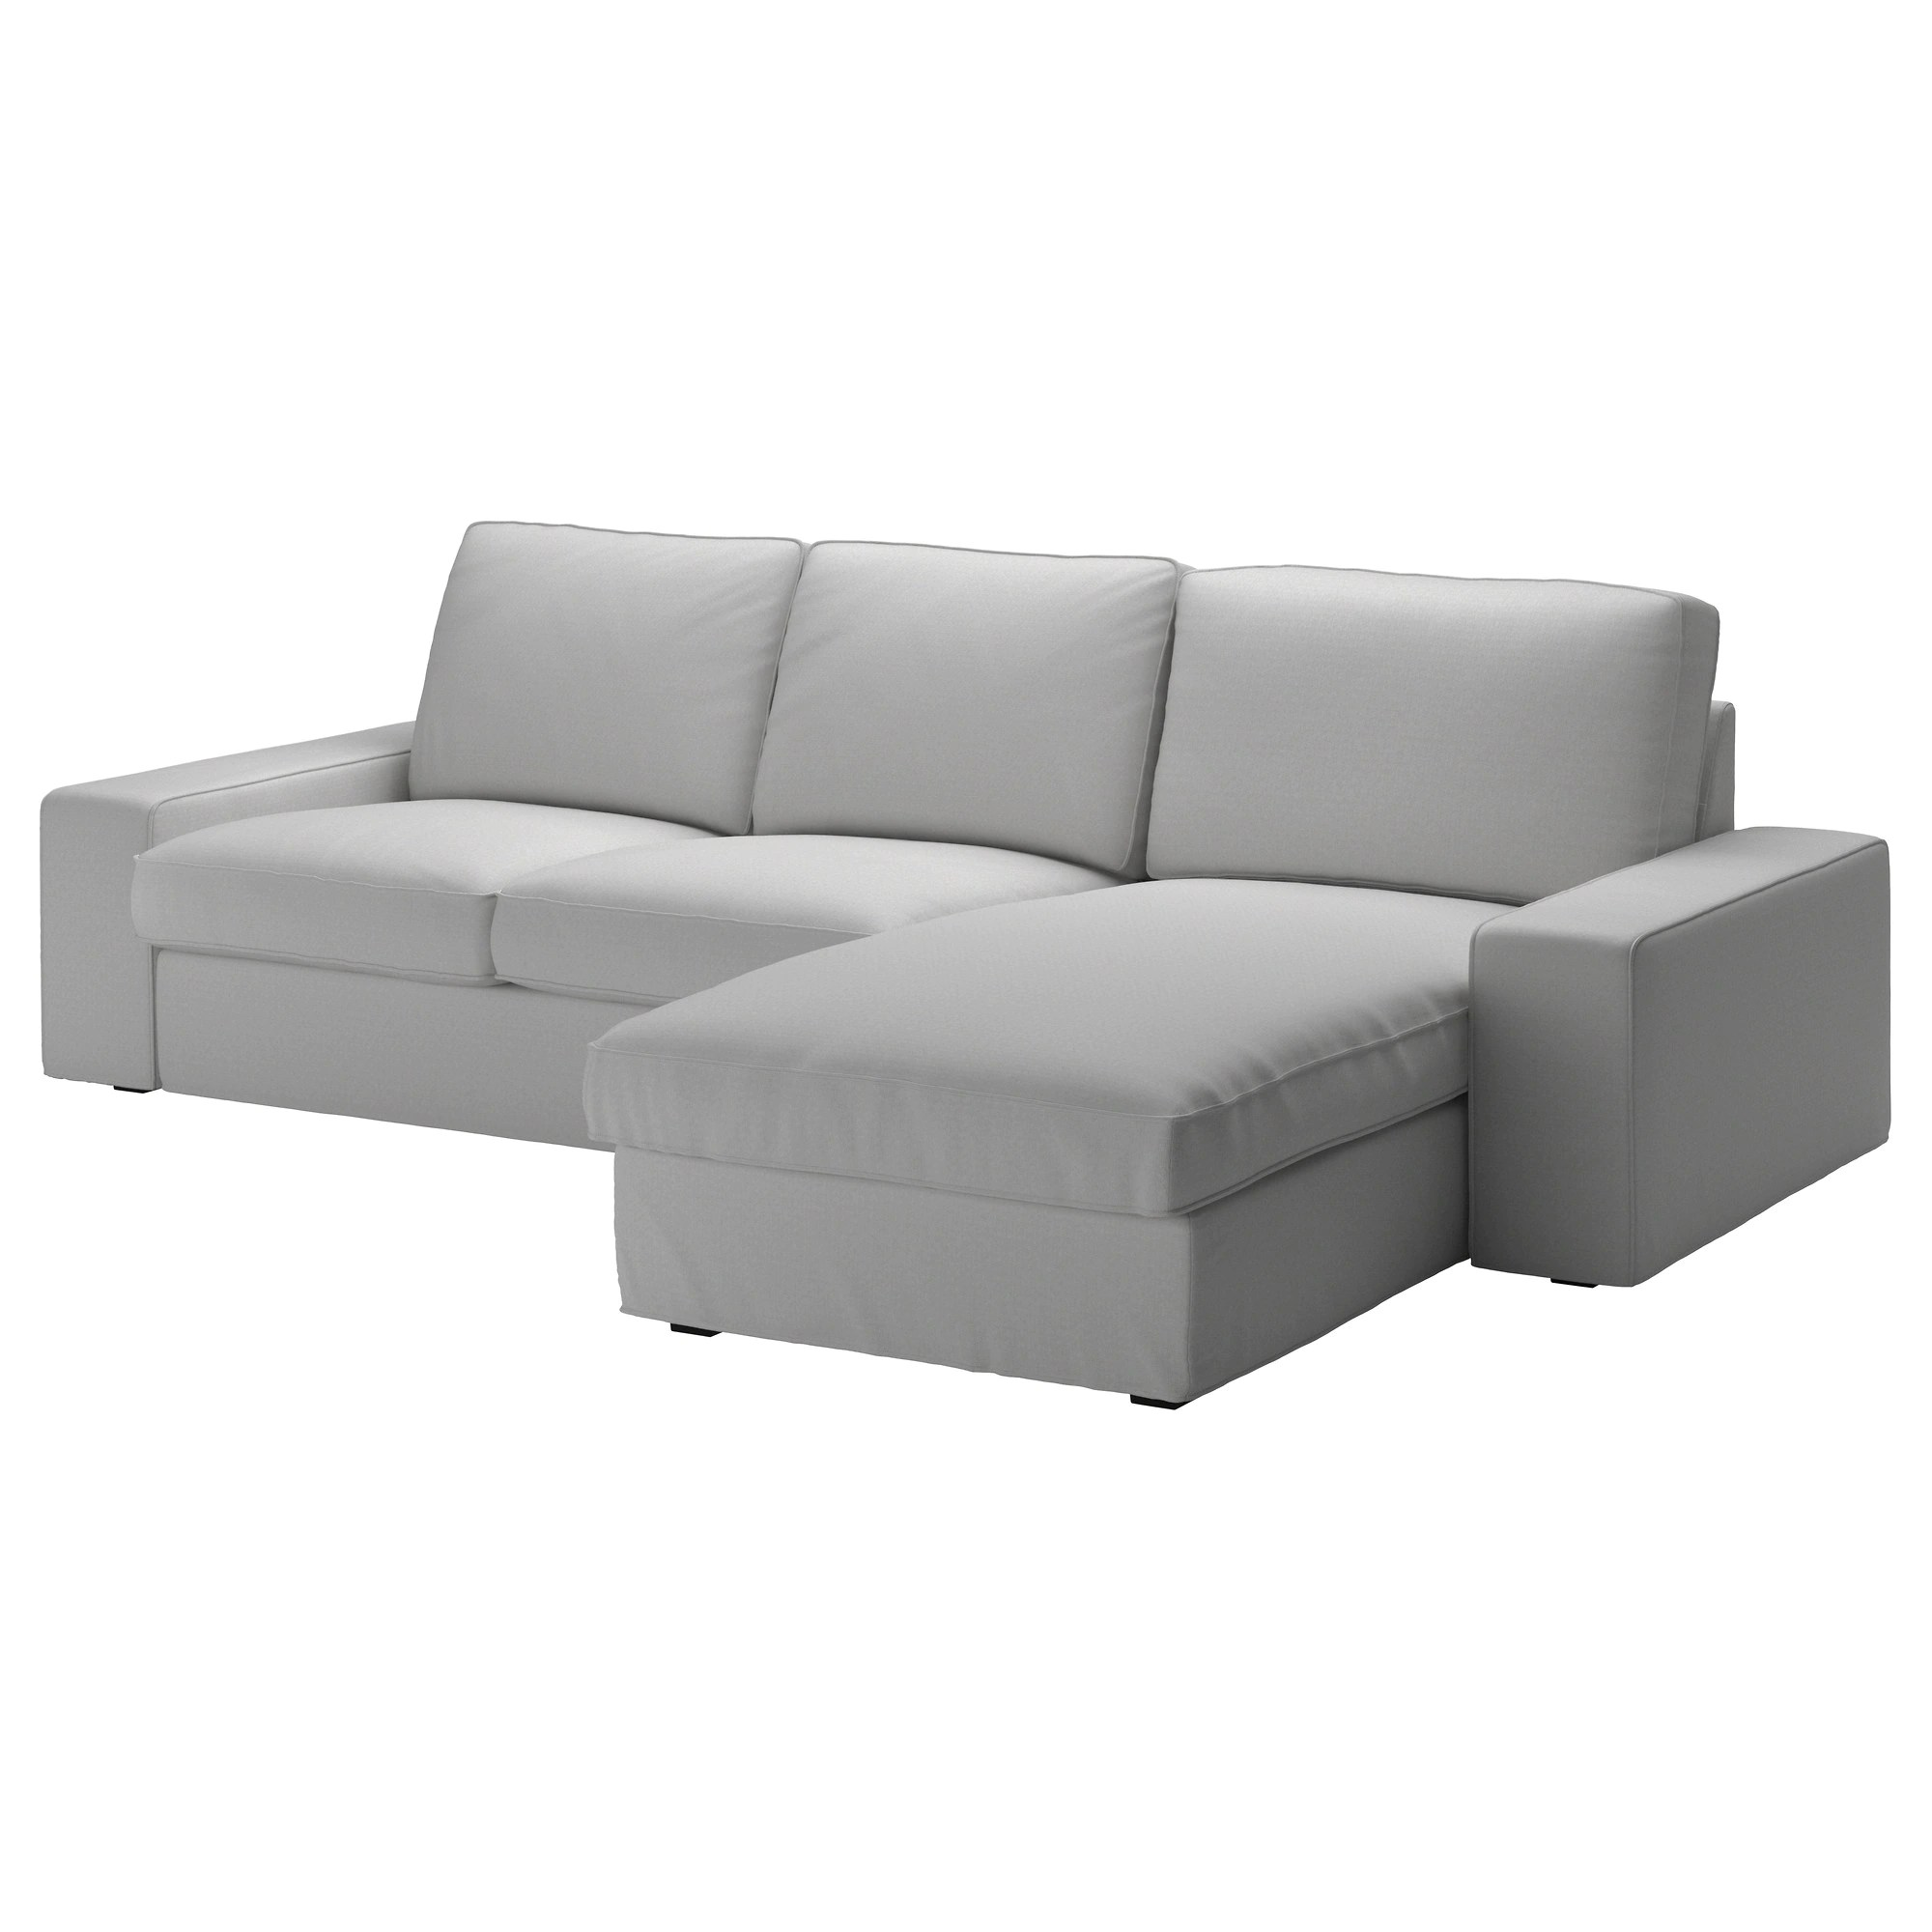 Ikea Kivik Sofa Kivik Sofa Orrsta With Chaise Orrsta Light Gray